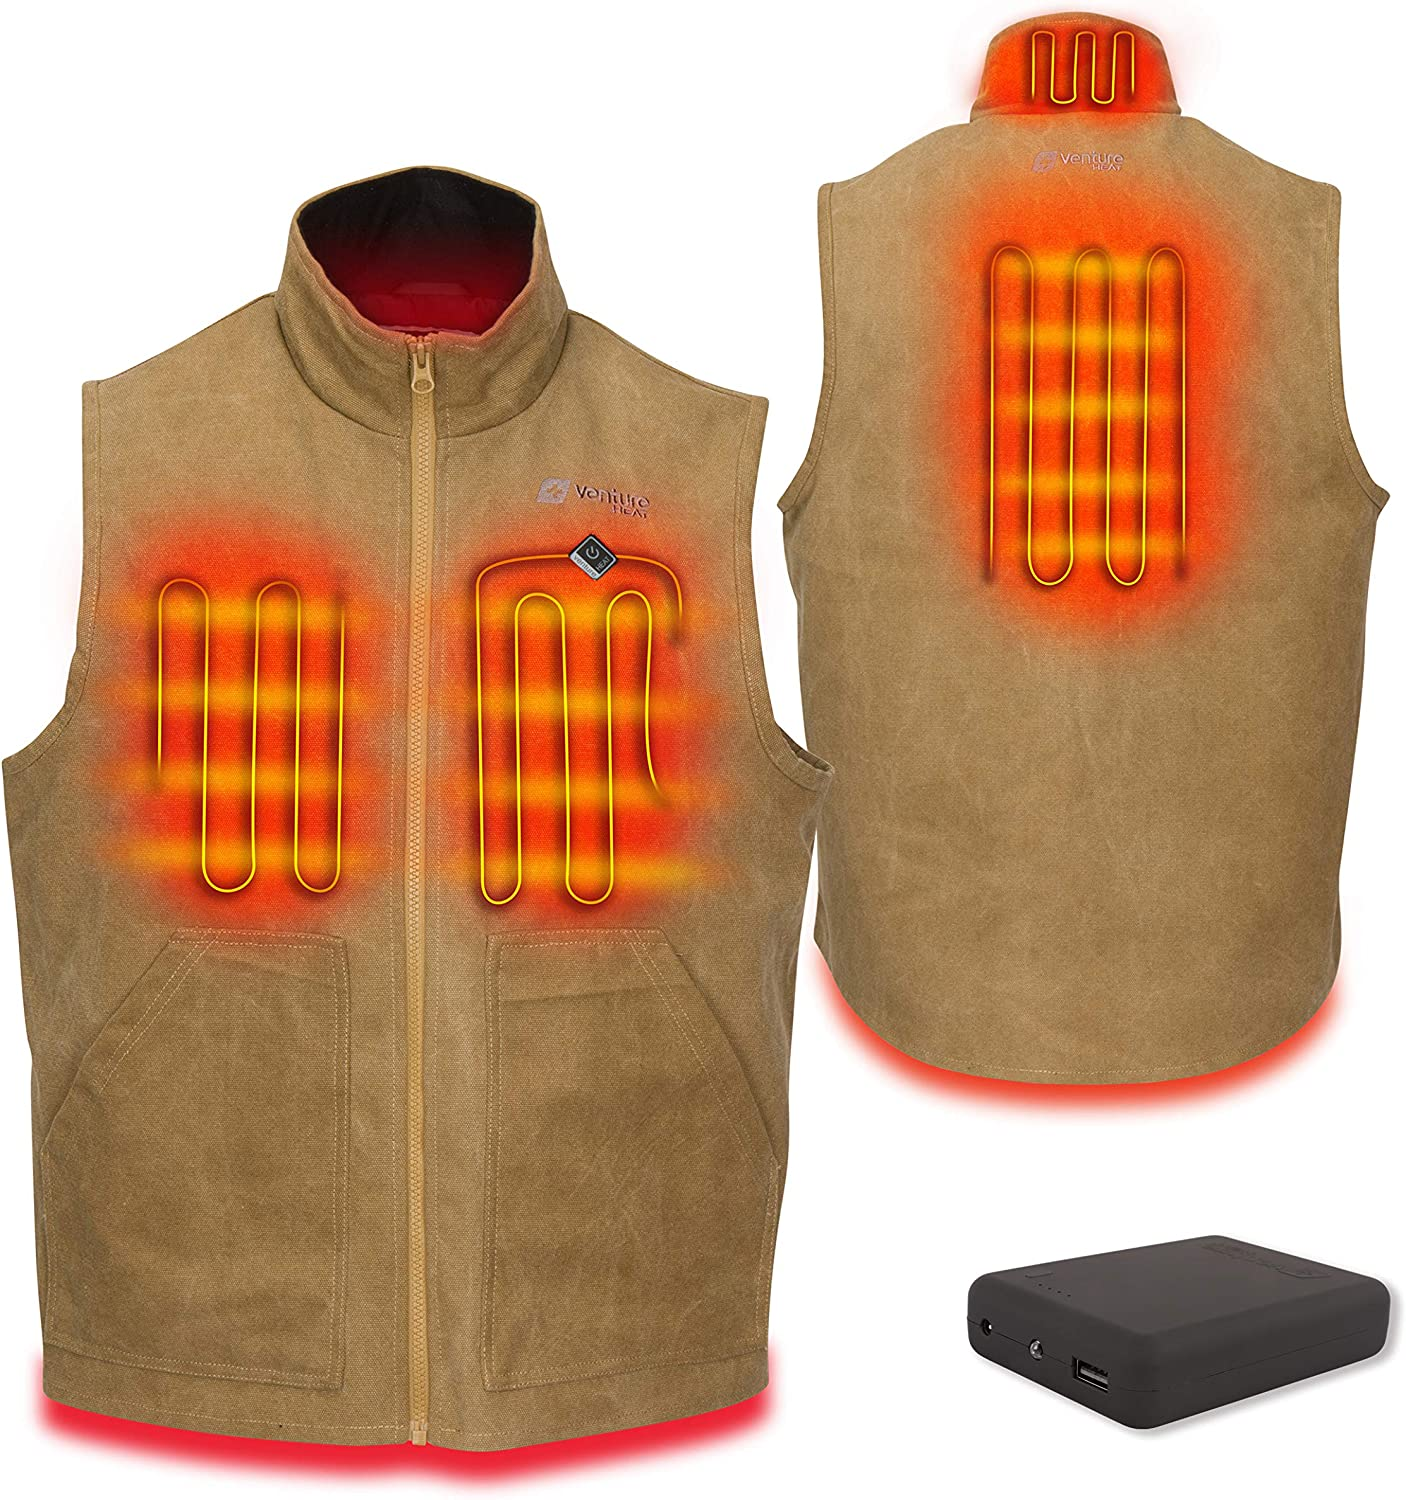 B Heater Hunting Vest Heated Jacket Heating Winter Ches Men Thermal Outdoor